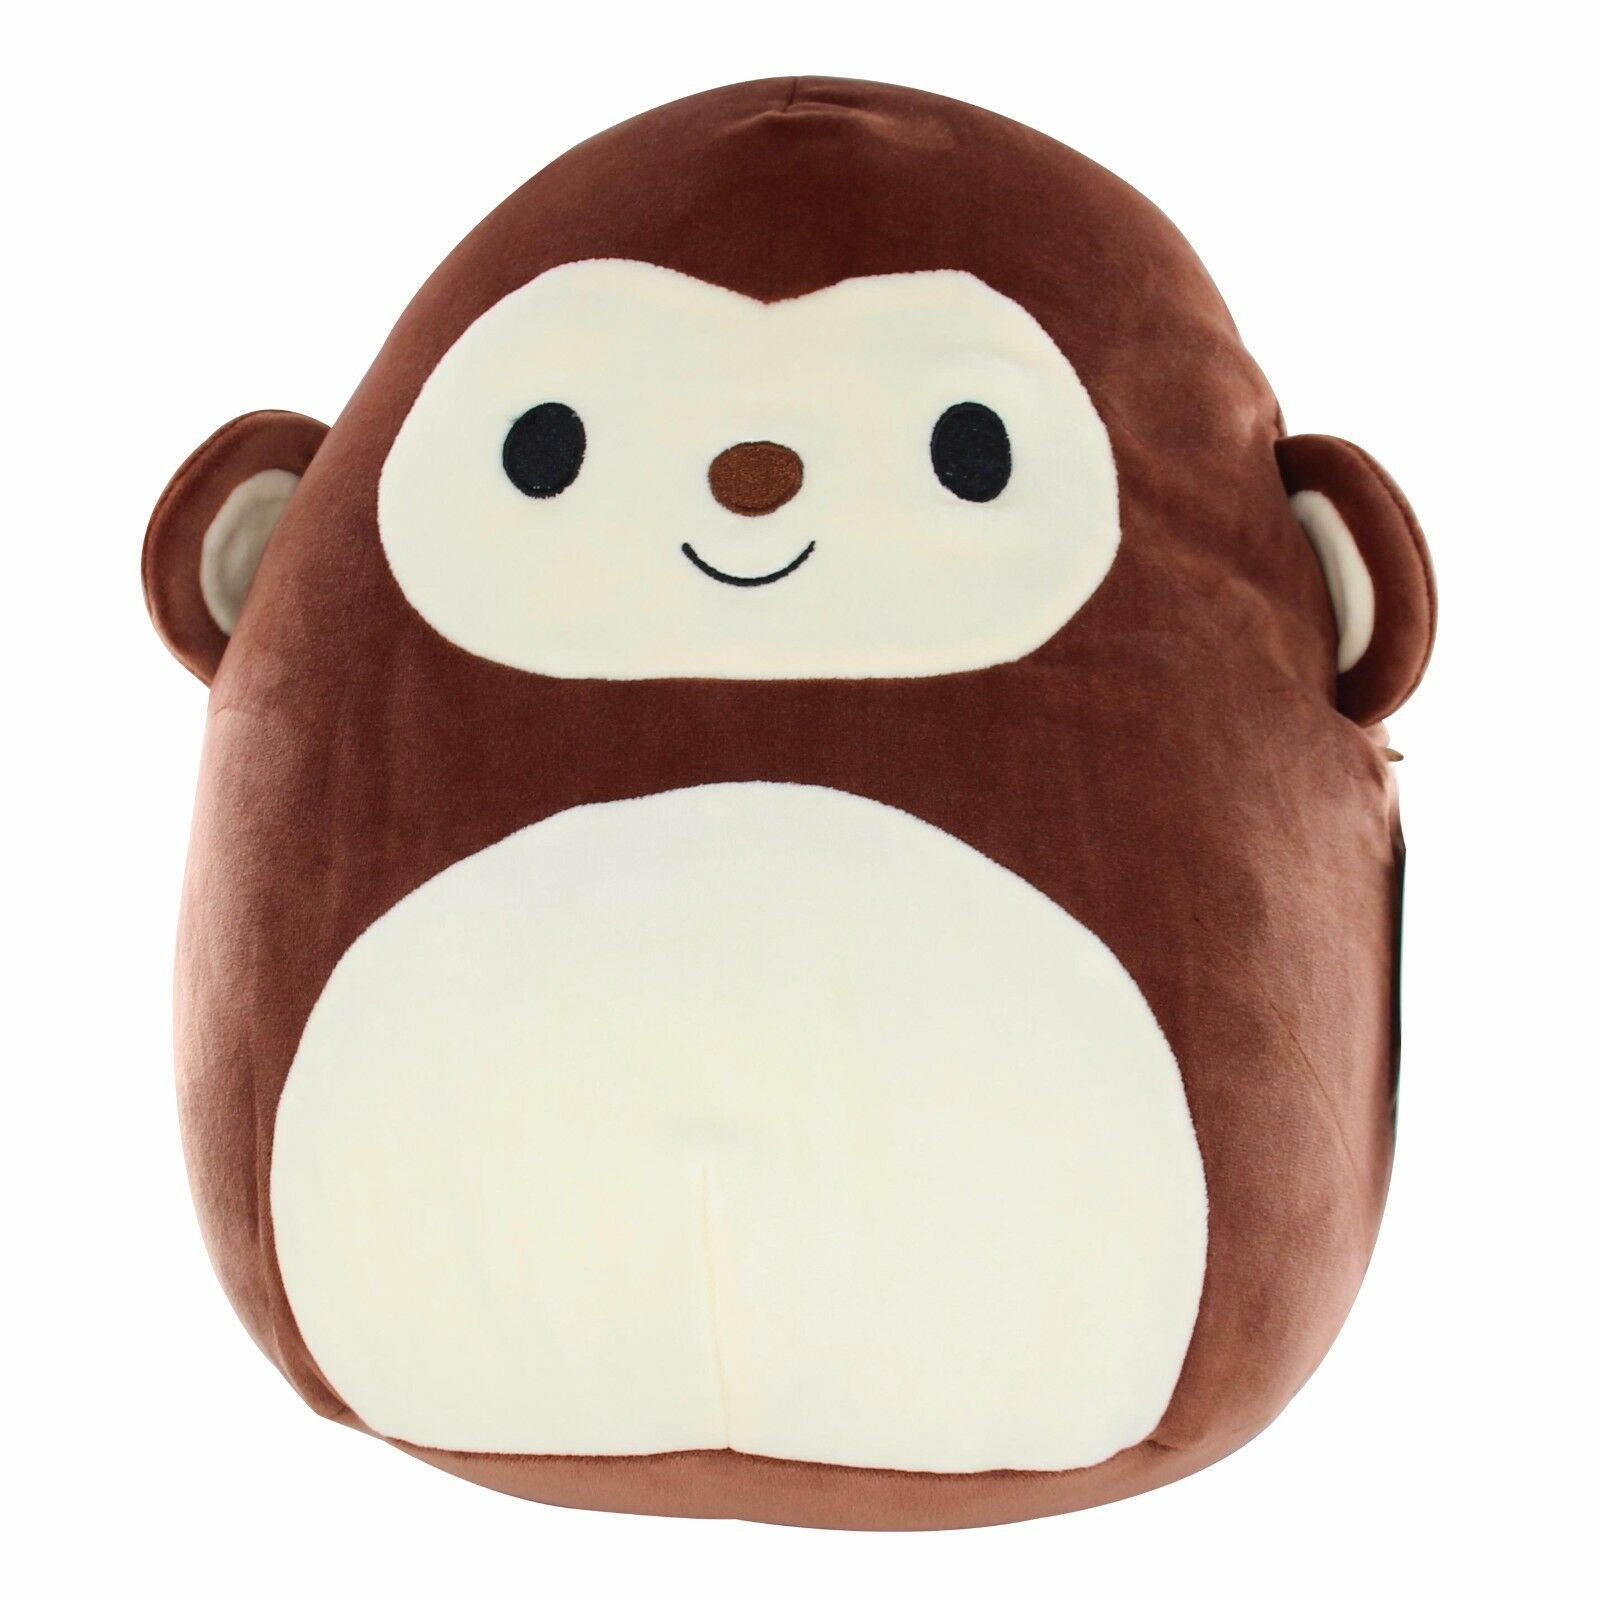 Kellytoy Squishmallow Peter The Pig 8 Super Soft Plush Toy Pillow Pet Pal Buddy 8 8 and 13 and 16 Monkey Squishmallow